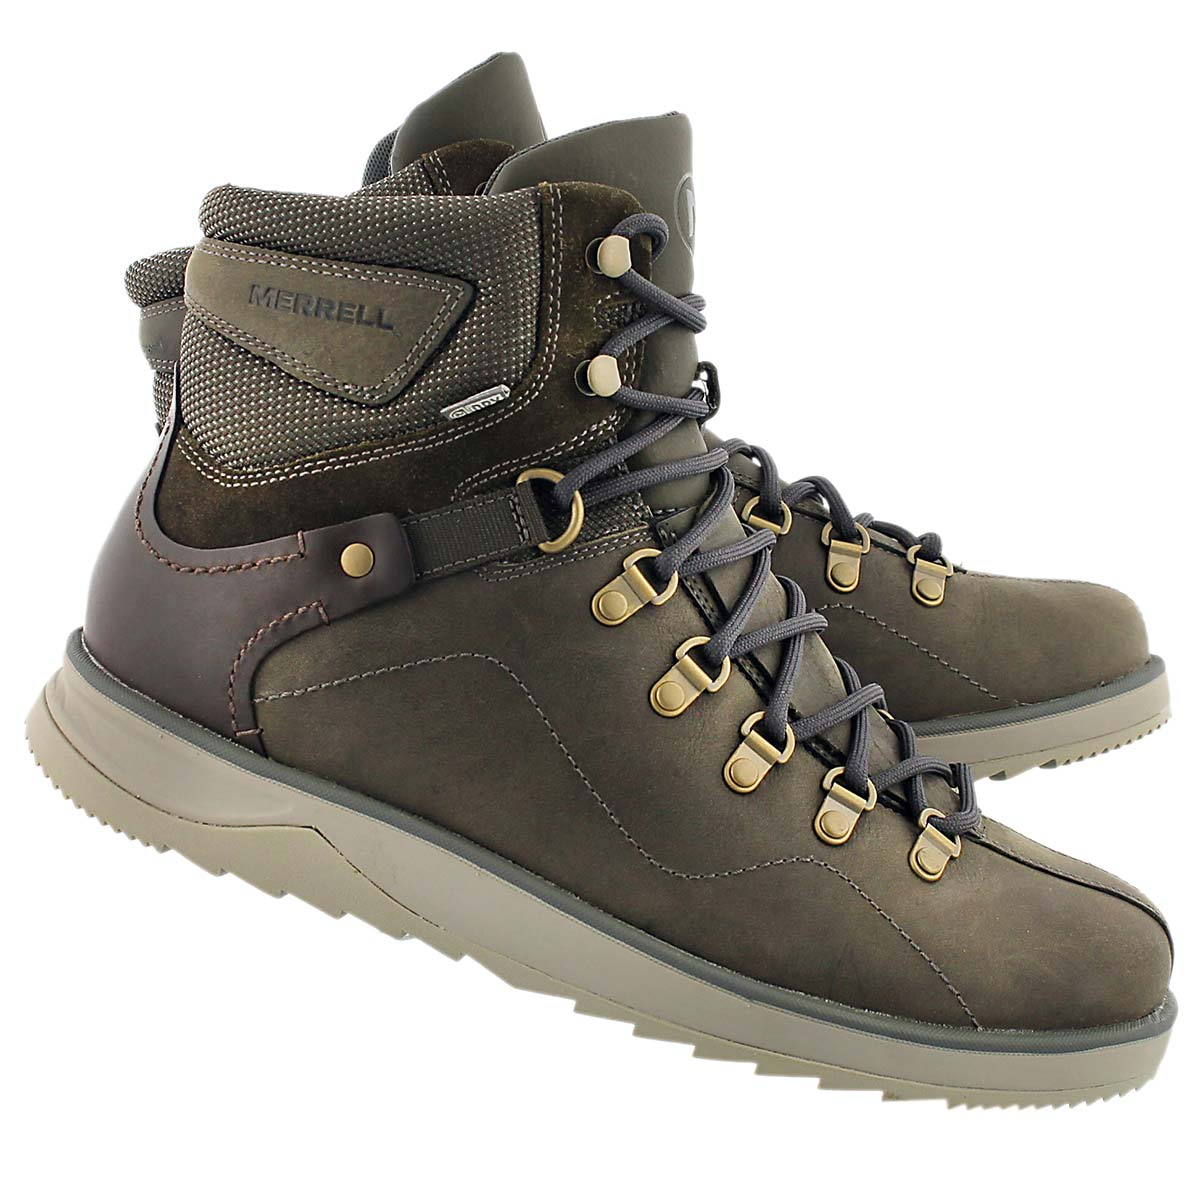 Mns Epiction Mid boulder wtpf boot